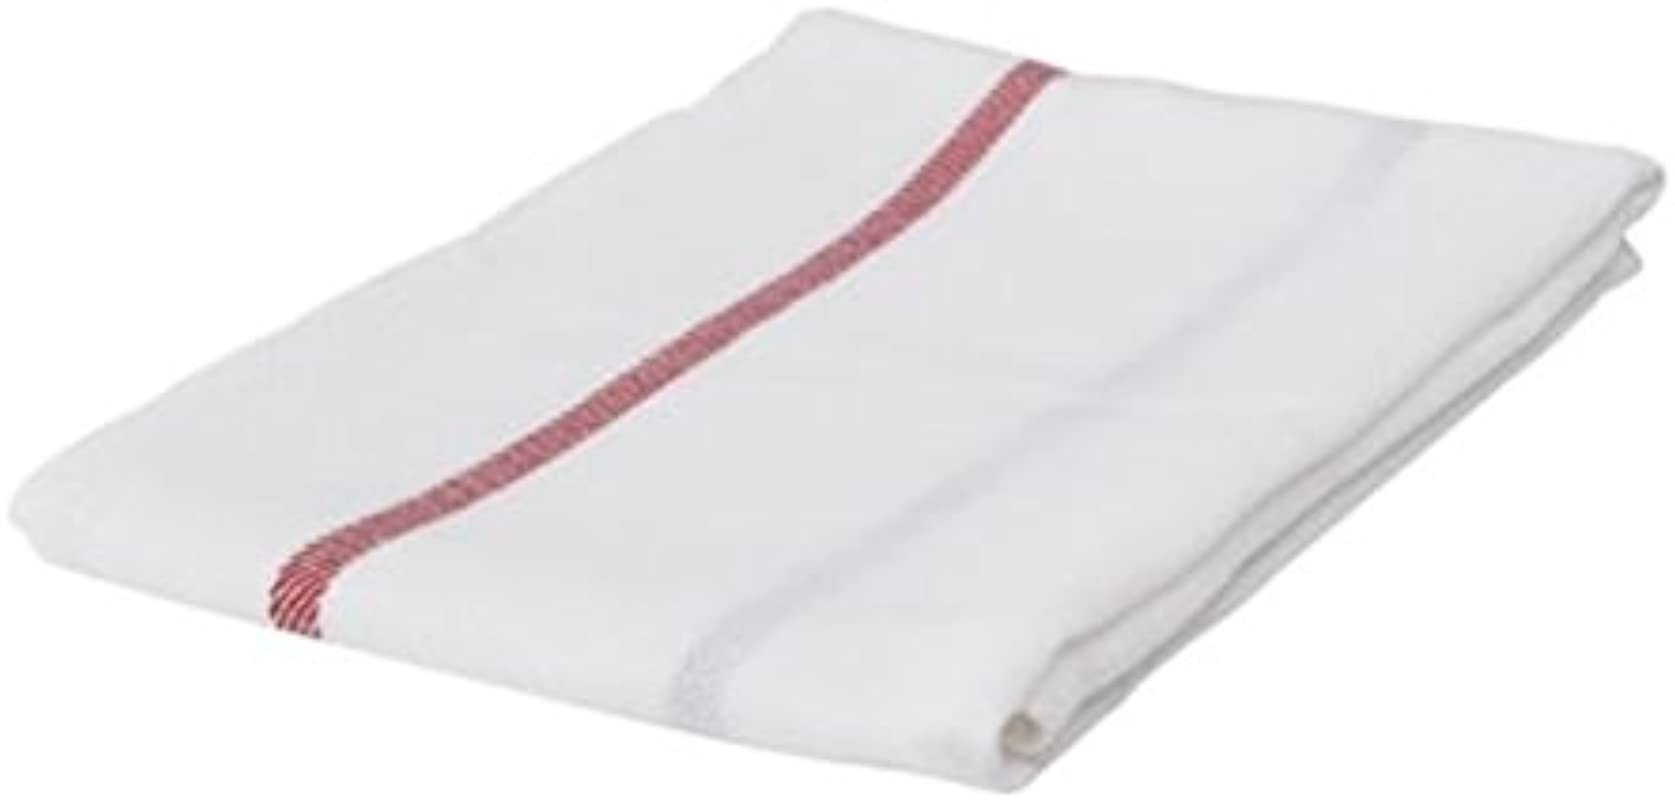 Ikea Dish Towel 101 009 09 Pack Of 20 White Red